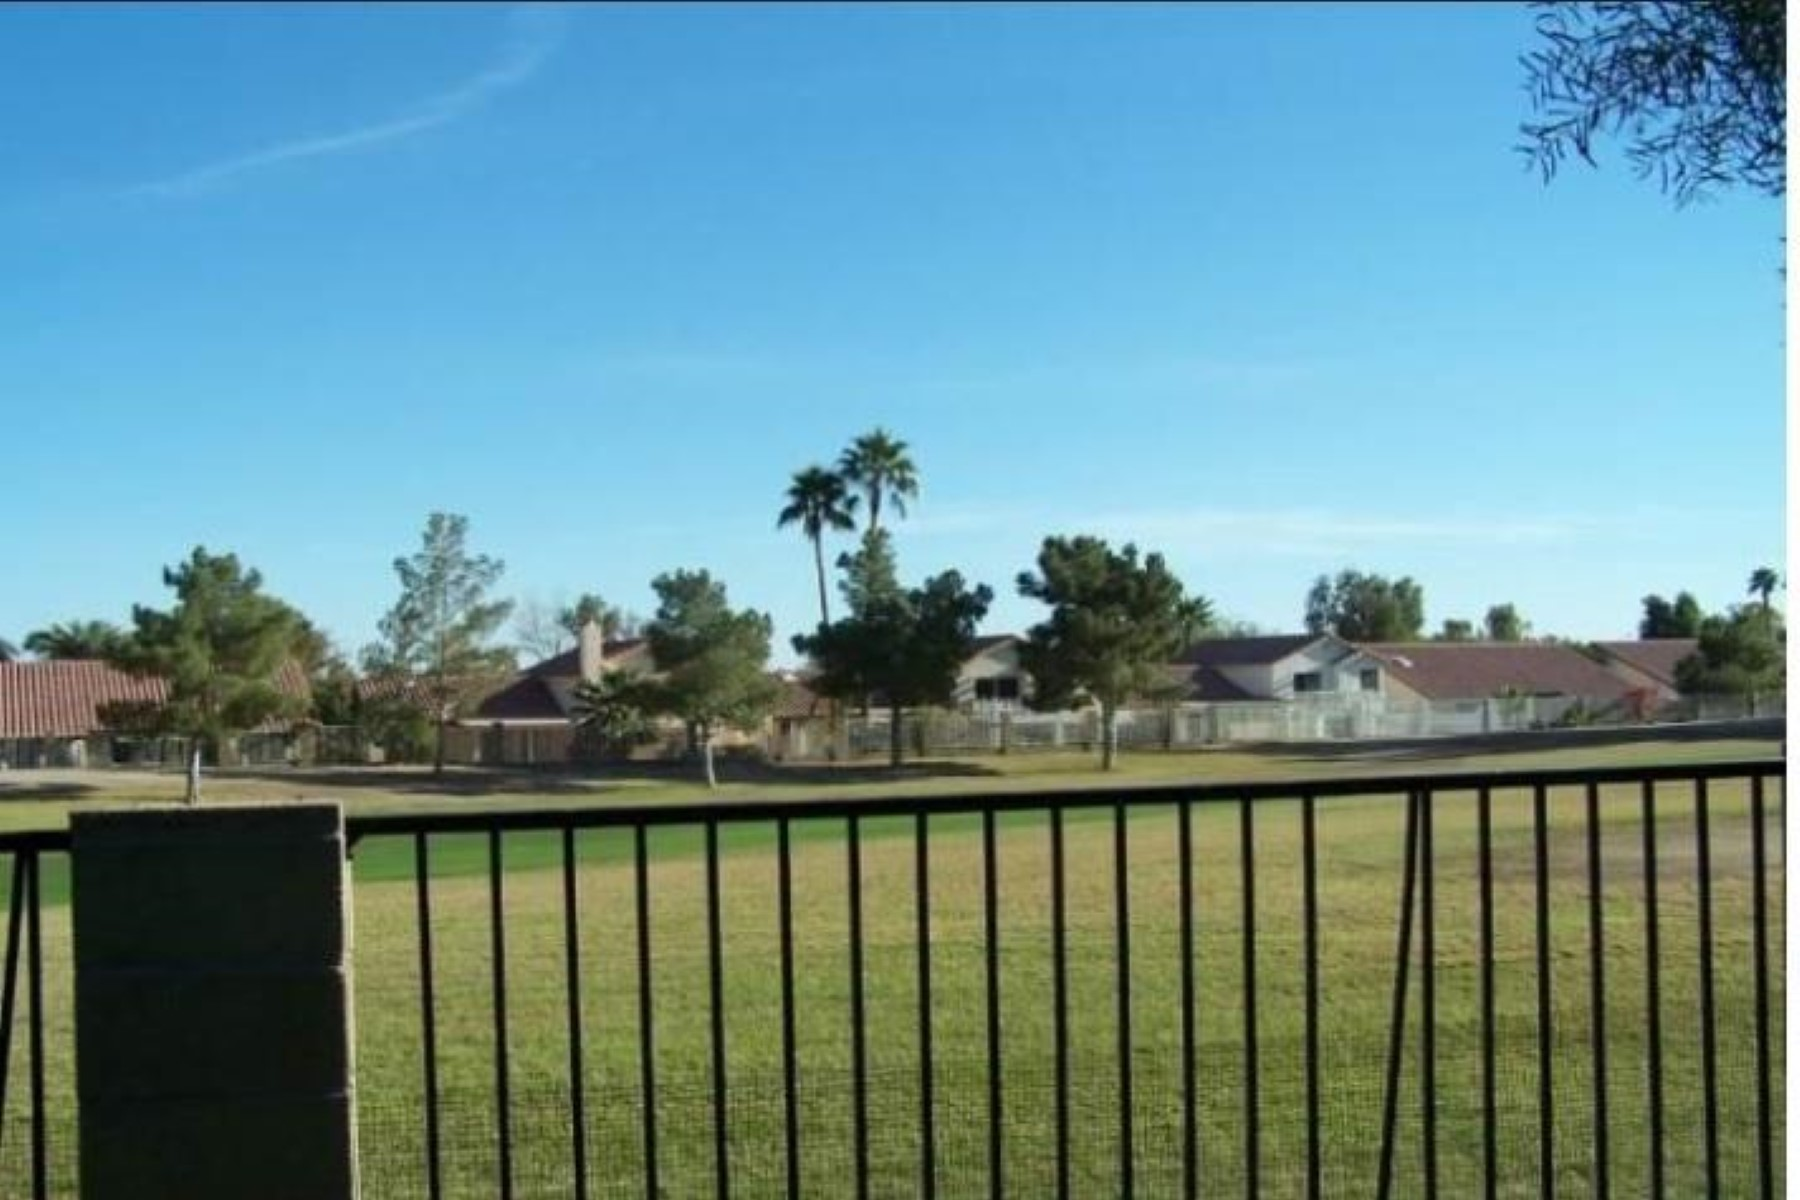 Vivienda unifamiliar por un Venta en Fantastic home on a golf course lot 11057 S Tomah St Phoenix, Arizona, 85044 Estados Unidos